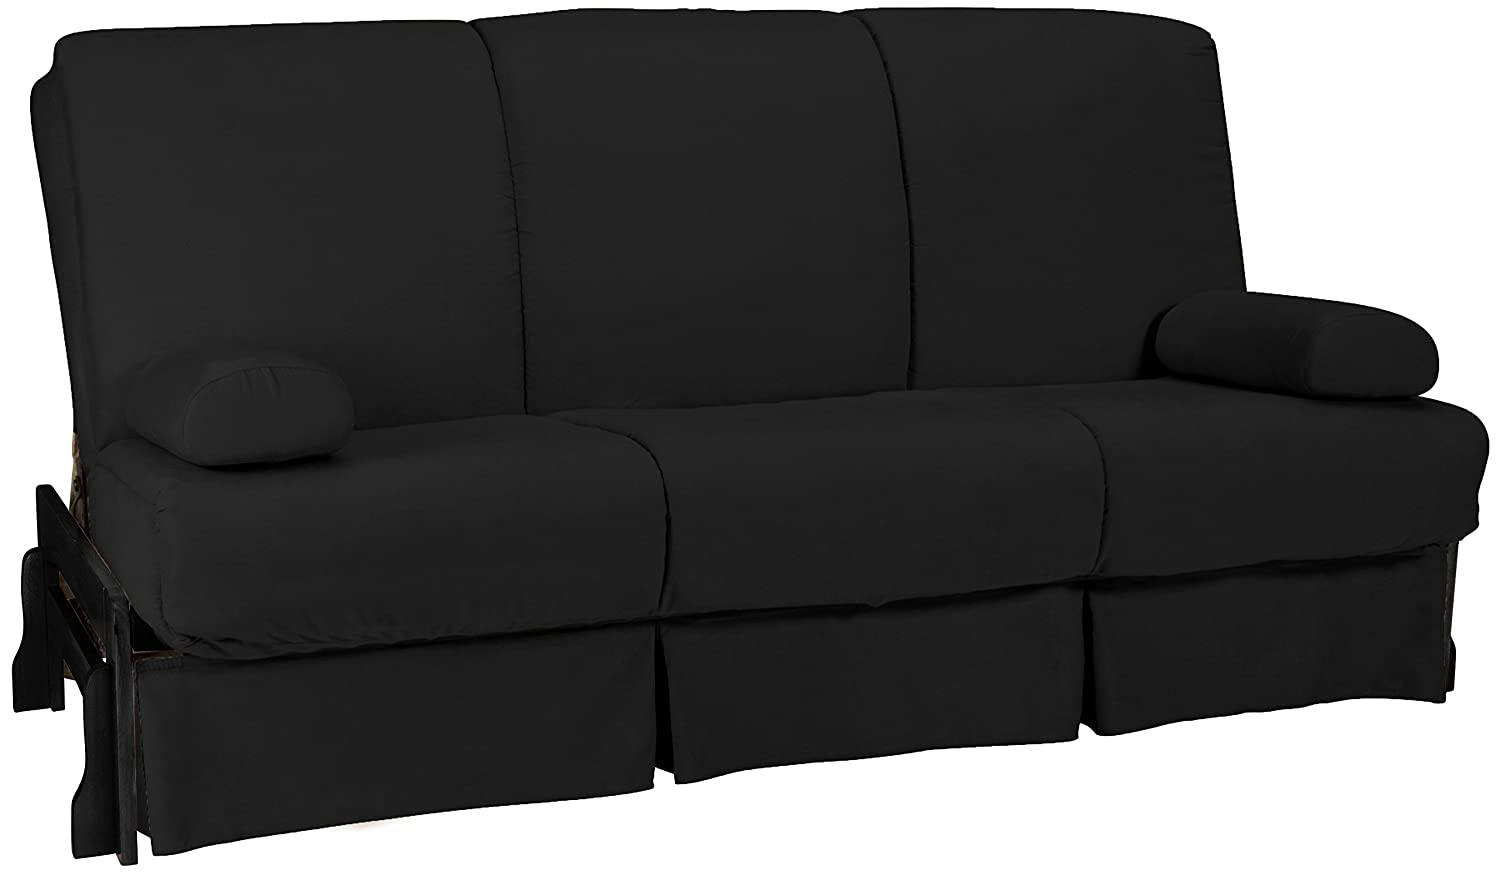 Epic Furnishings Bristol Perfect Sit and Sleep Inner Spring Microfiber Futon Sofa Sleeper Bed - Queen-Size - Black